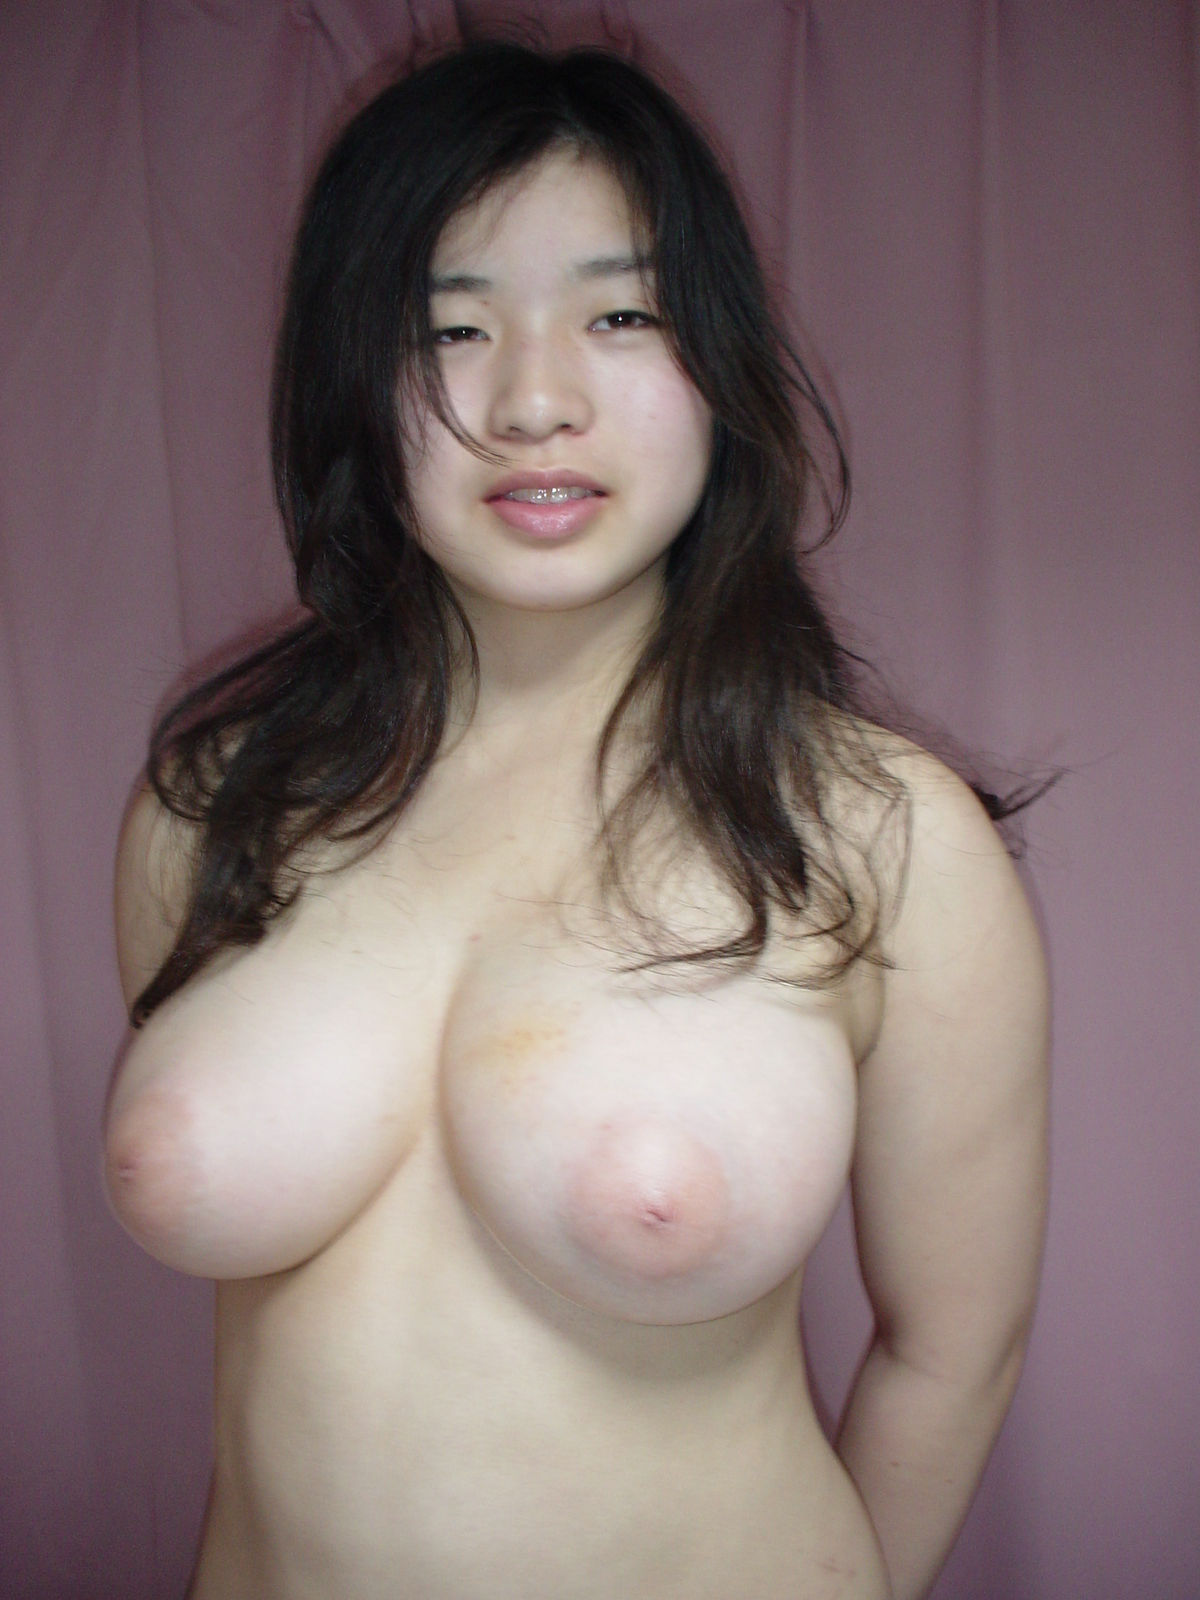 Chubby Nude Japanese Girls